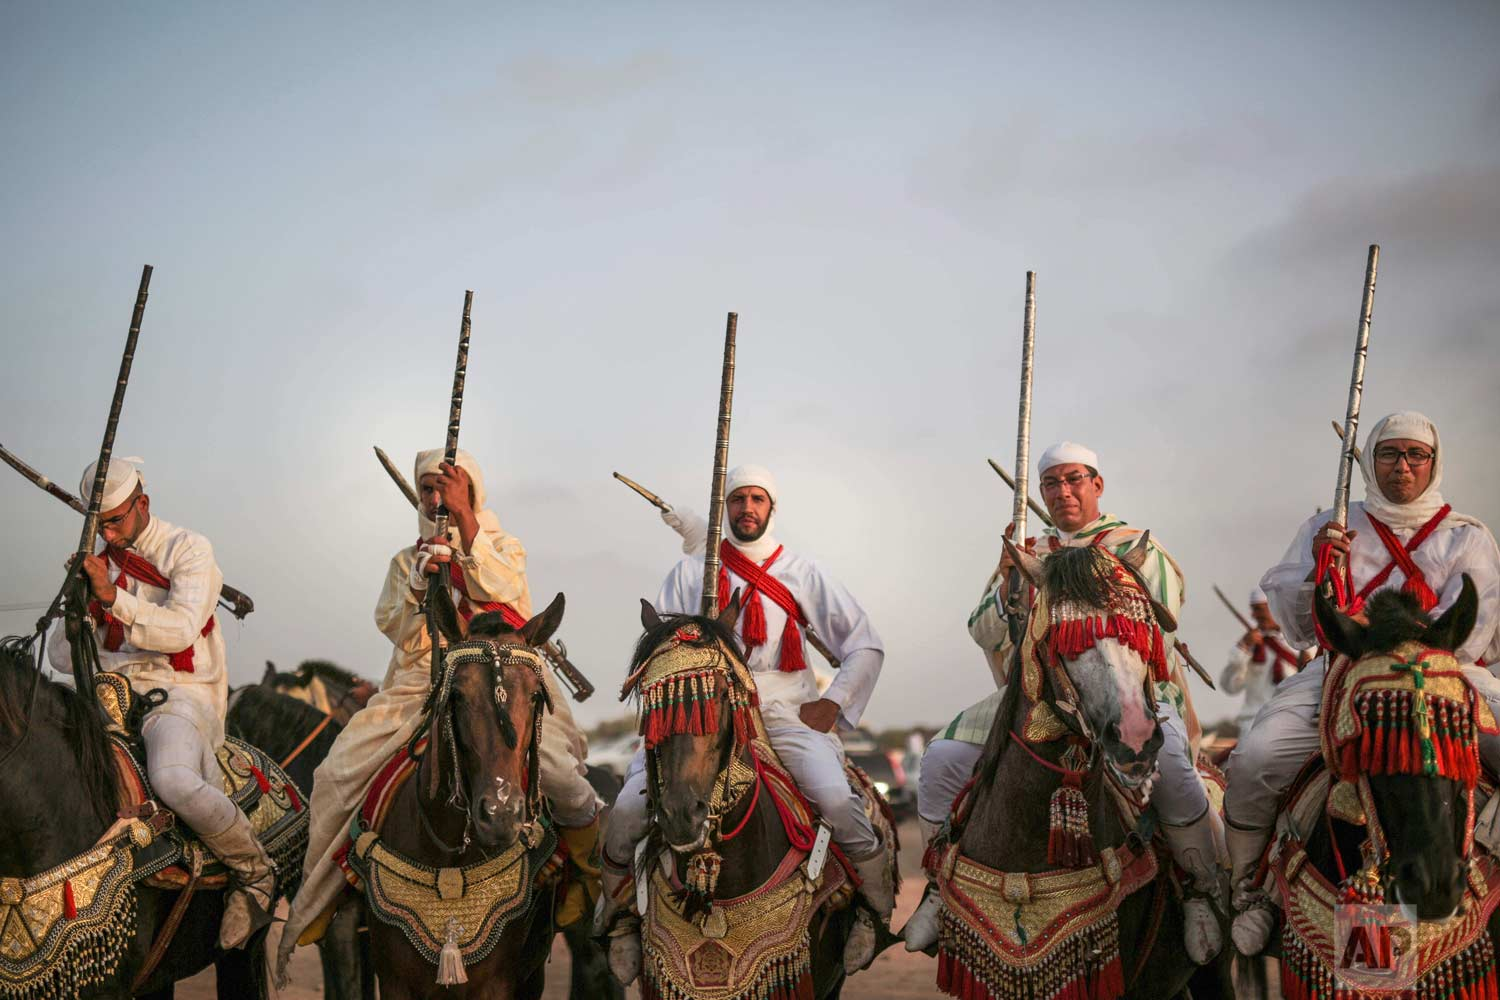 In this Thursday, Aug. 17, 2017 photo, horsemen prepare to take part in Tabourida, a traditional horse riding show also known as Fantasia, in Mansouria, near Casablanca, Morocco. (AP Photo/Mosa'ab Elshamy)